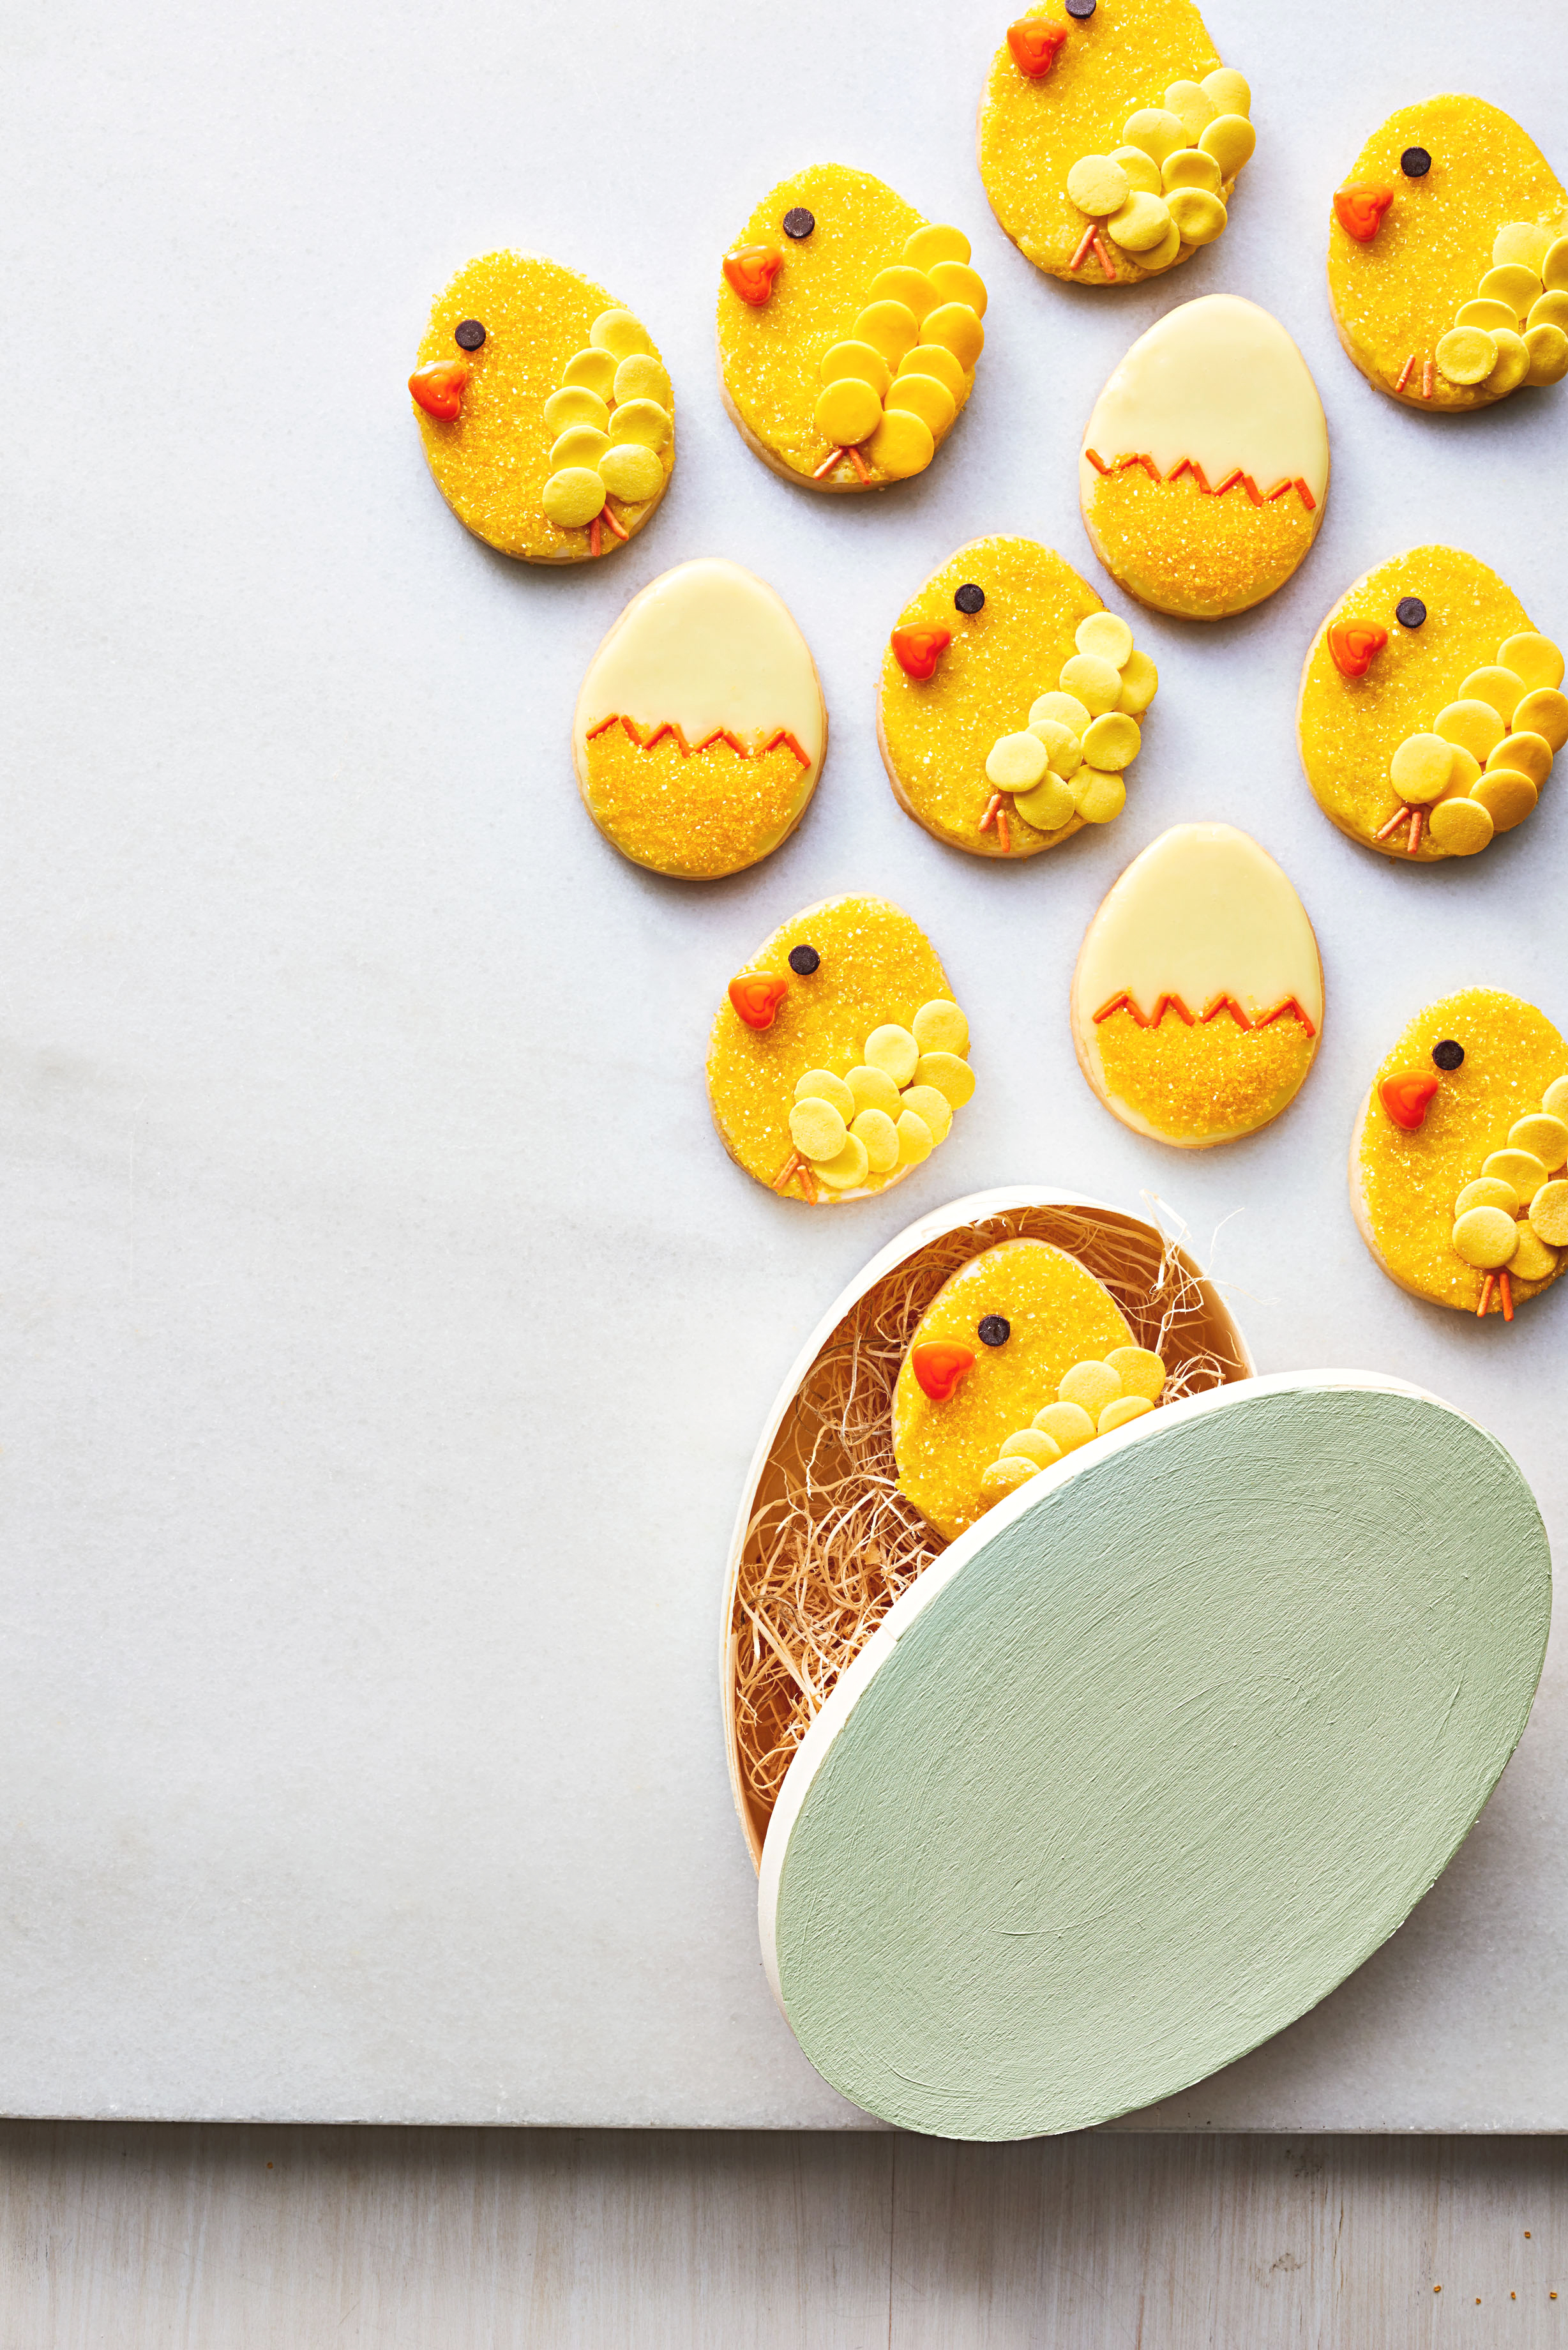 A Kid-Friendly Easter Brunch Menu That's Colorful, Cute, and Cheesy Too